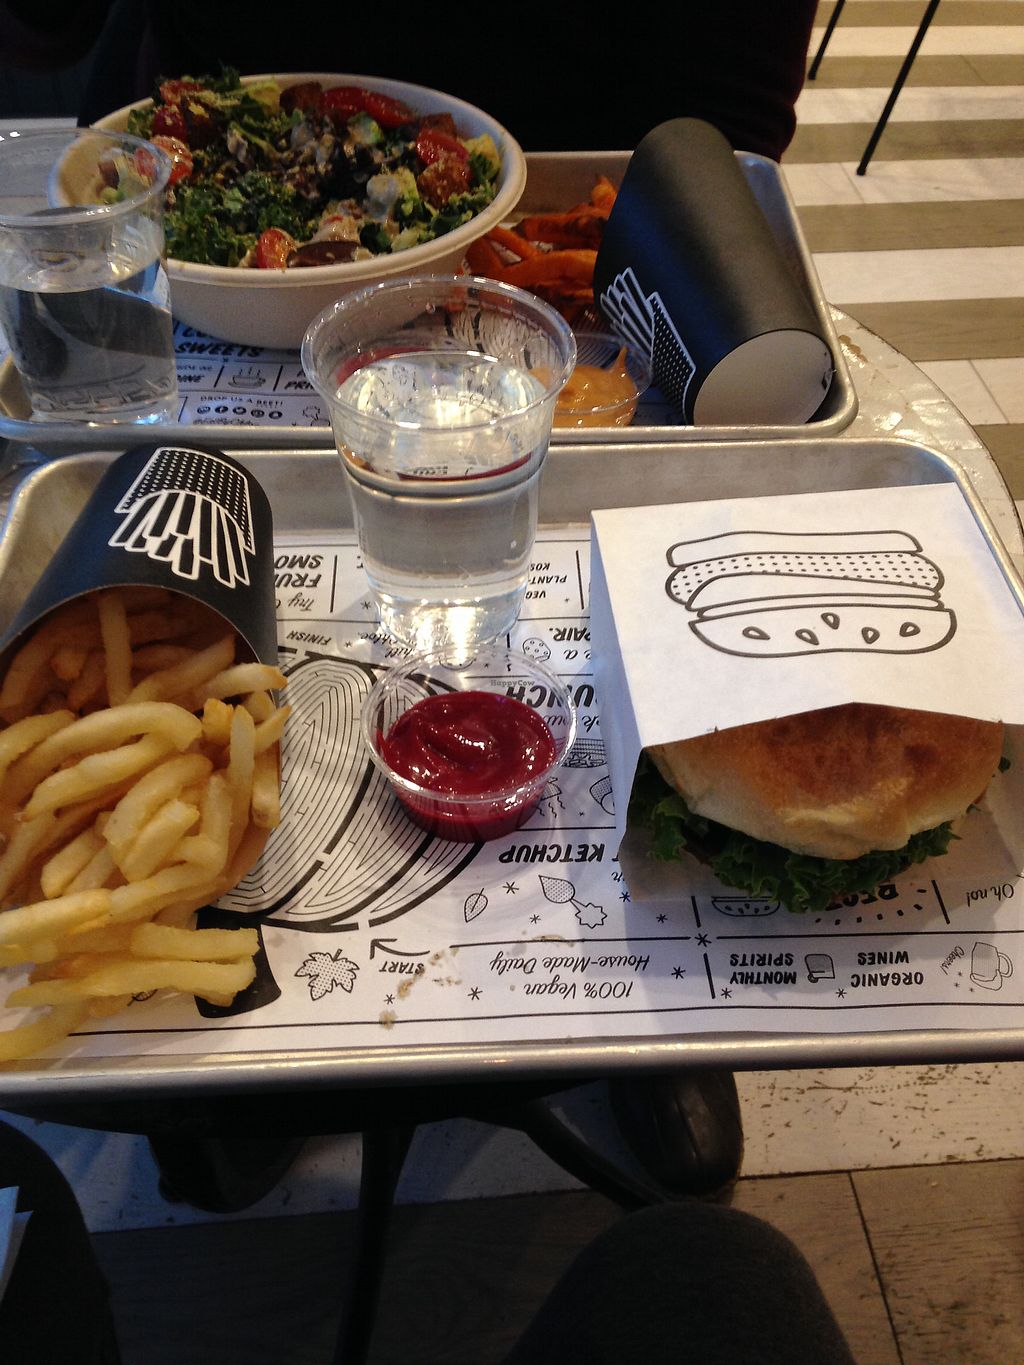 """Photo of By Chloe - Seaport  by <a href=""""/members/profile/HGrey42"""">HGrey42</a> <br/>Veggie burger, air baked fries, and beet ketchup/ <br/> December 26, 2017  - <a href='/contact/abuse/image/87689/339260'>Report</a>"""